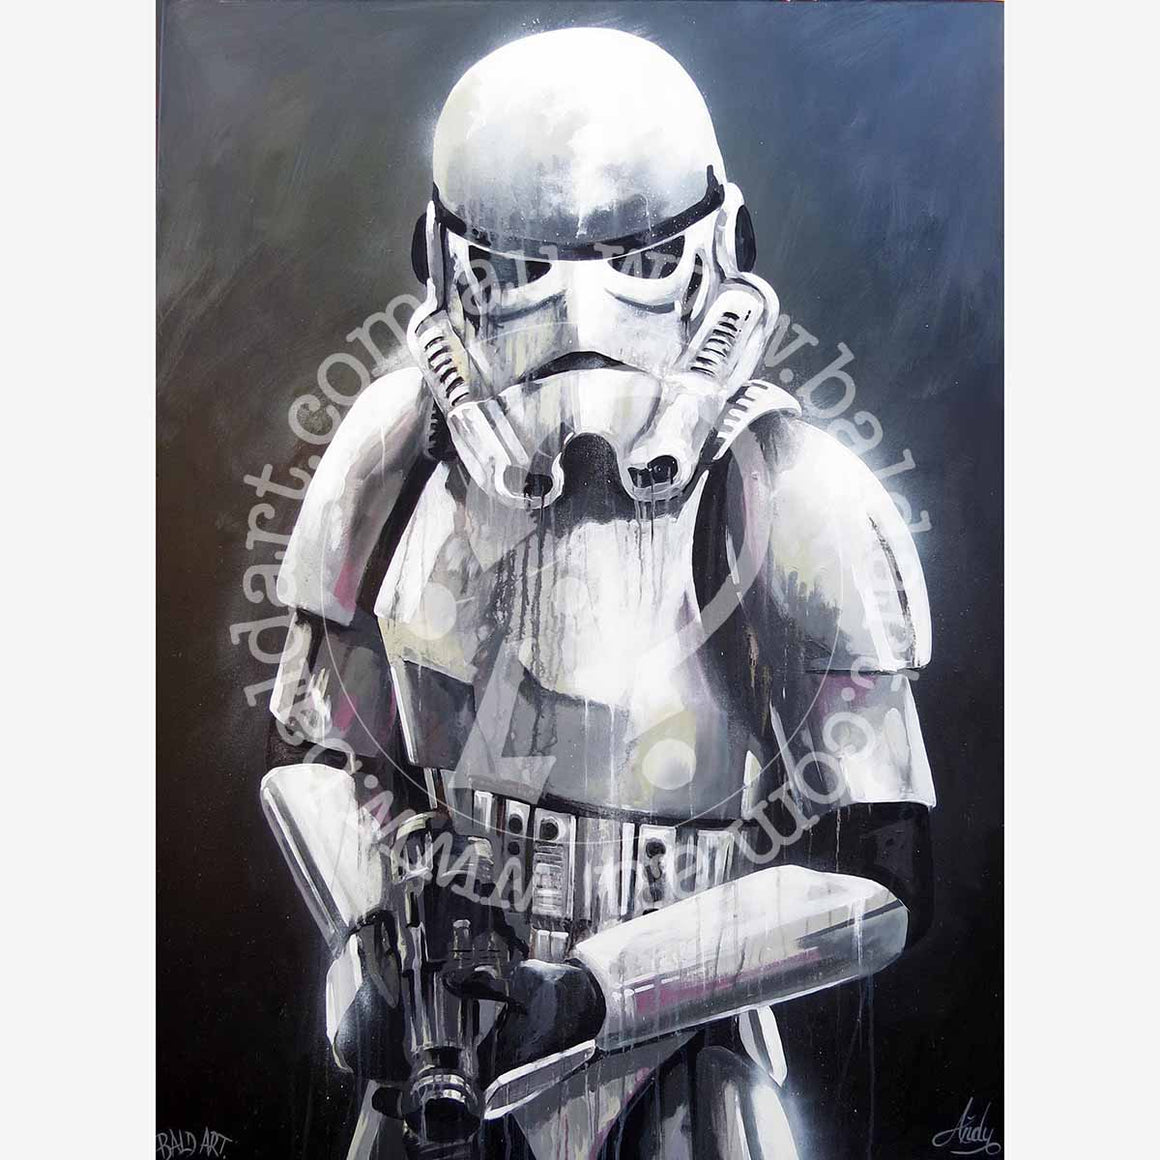 star wars stormtrooper artwork by andy baker of bald art